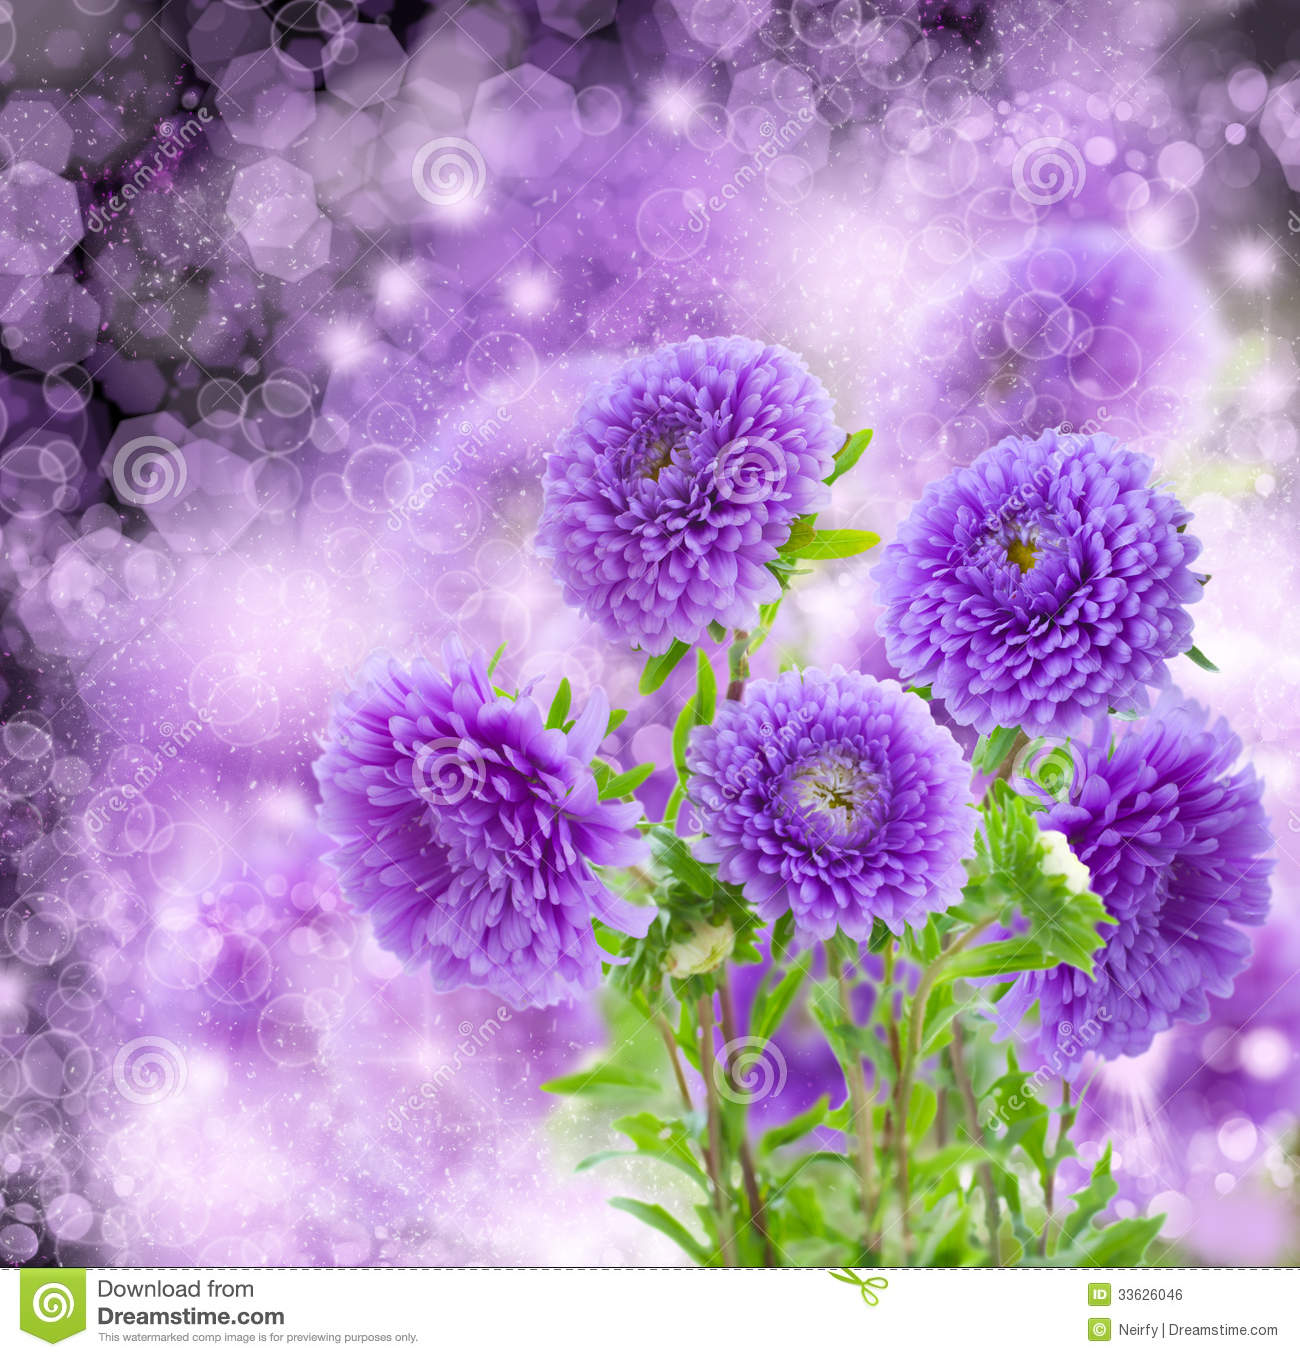 Free Desktop Wallpaper Fall Foliage Violet Aster Flowers On Bokeh Background Royalty Free